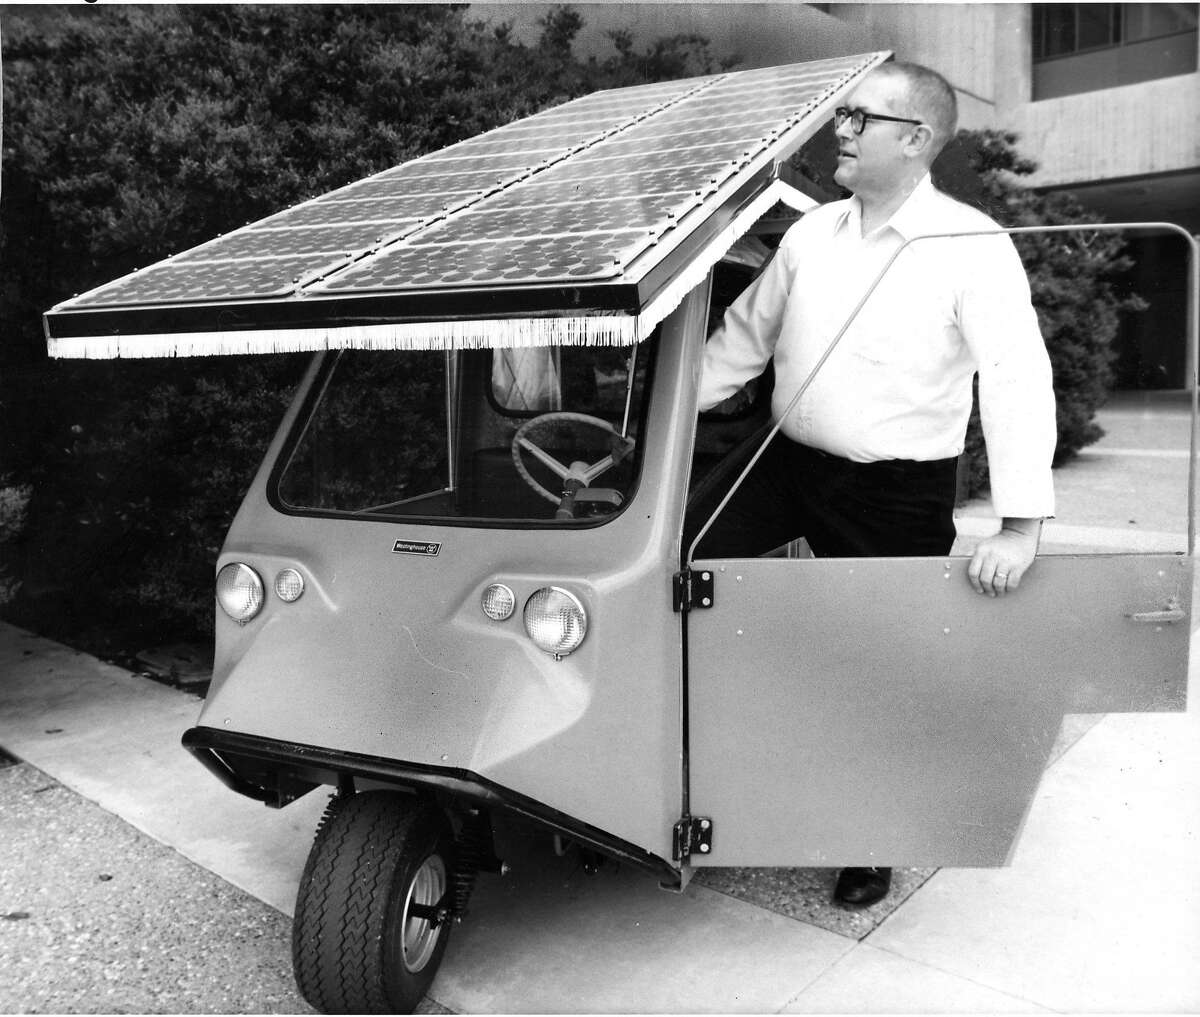 Guy Armantrout, a scientist at the Lawrence Livermore Laboratory, uses this solar surrey in 1978 to test the reliability of various solar cells.